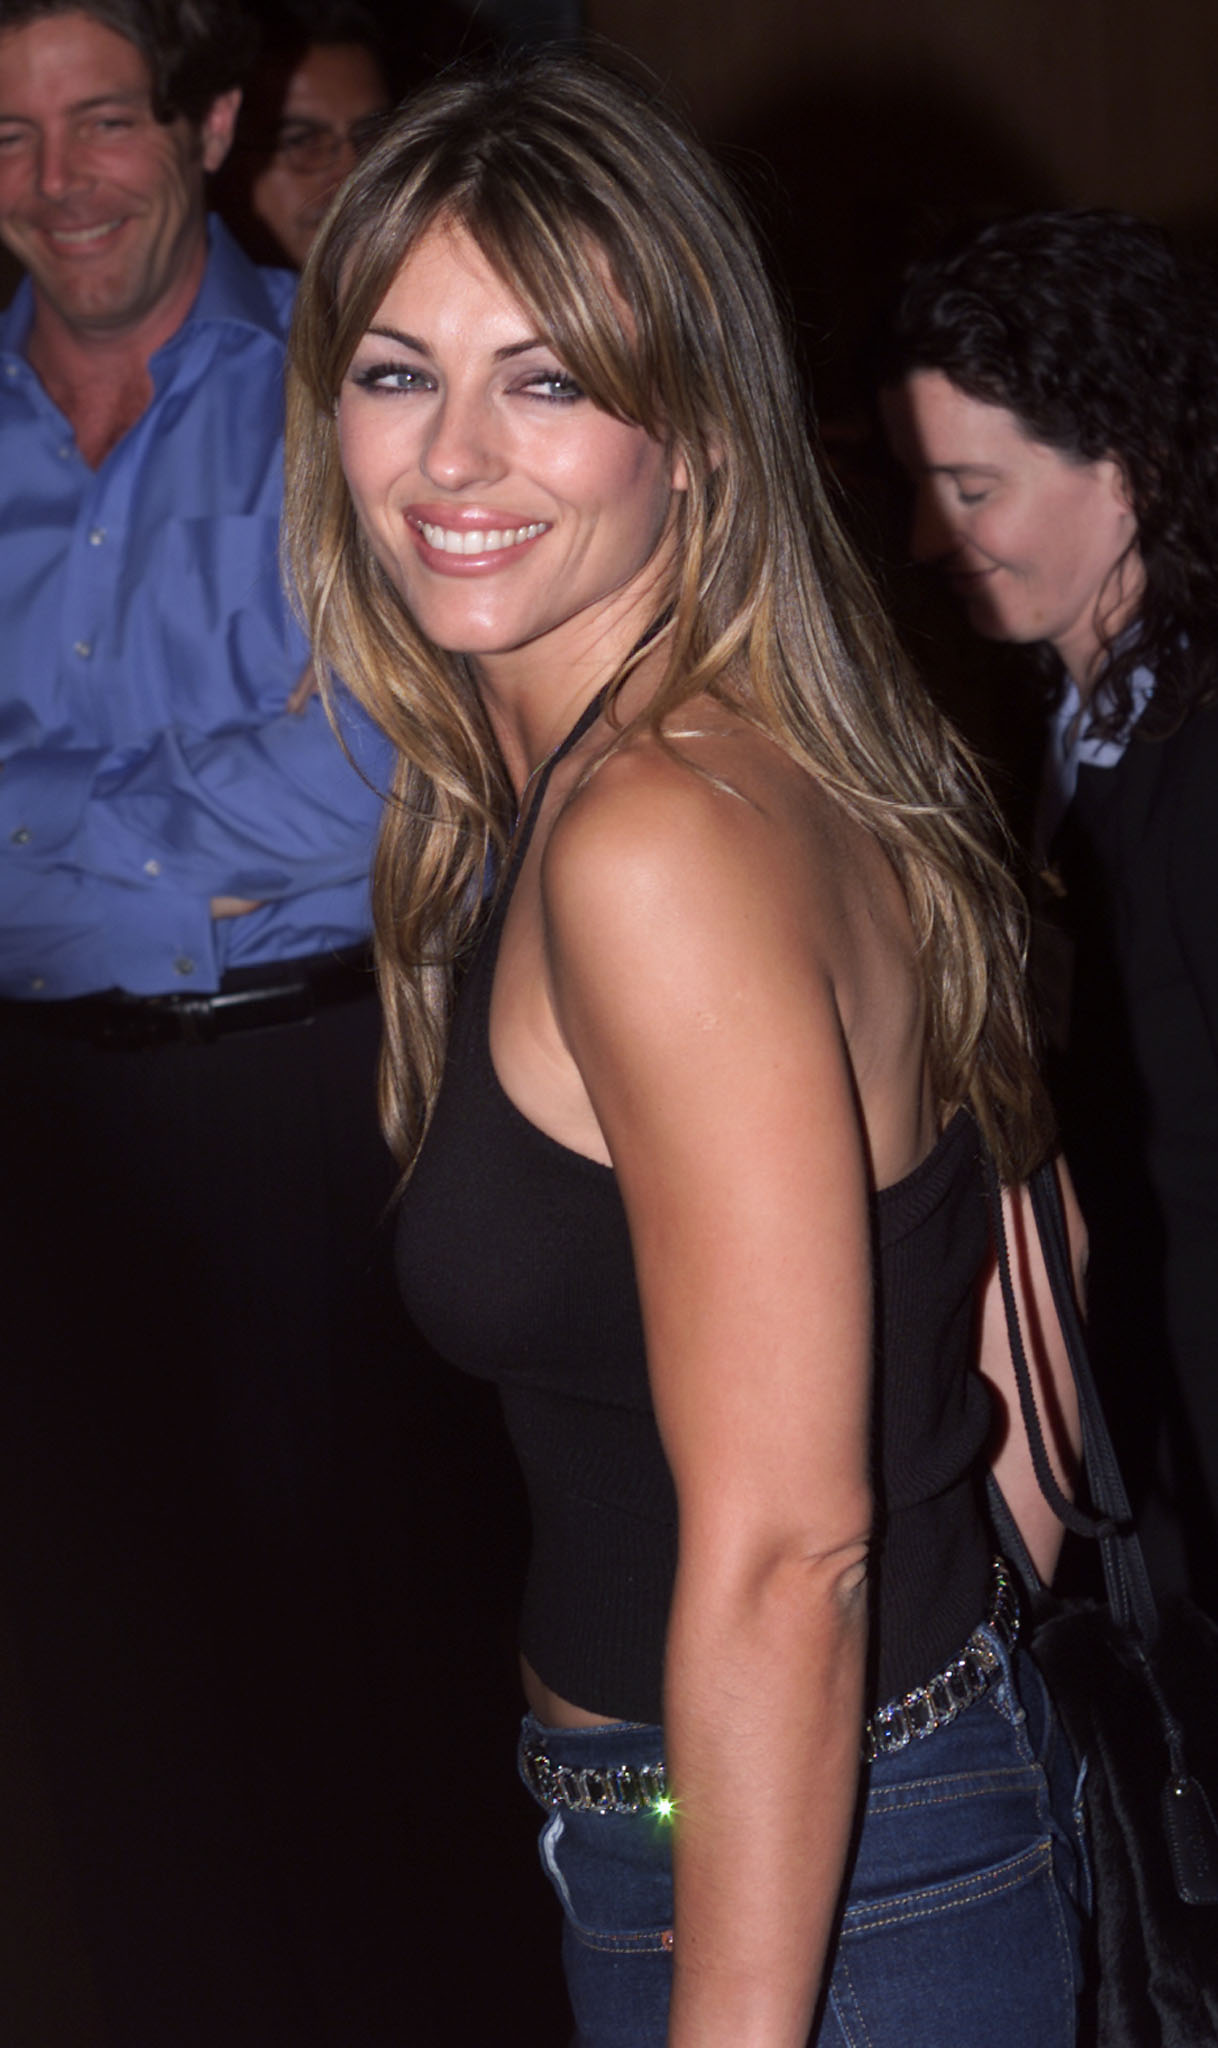 """Actress and model Elizabeth Hurley arrives as a guest at a party following the premiere of the new film """"Best in Show"""" September 19, 2000 in Hollywood, California. [The film is a comedy about eccentric dog owners gearing up for the canine showdown of their lives, the Mayflower Dog Show.  ]"""